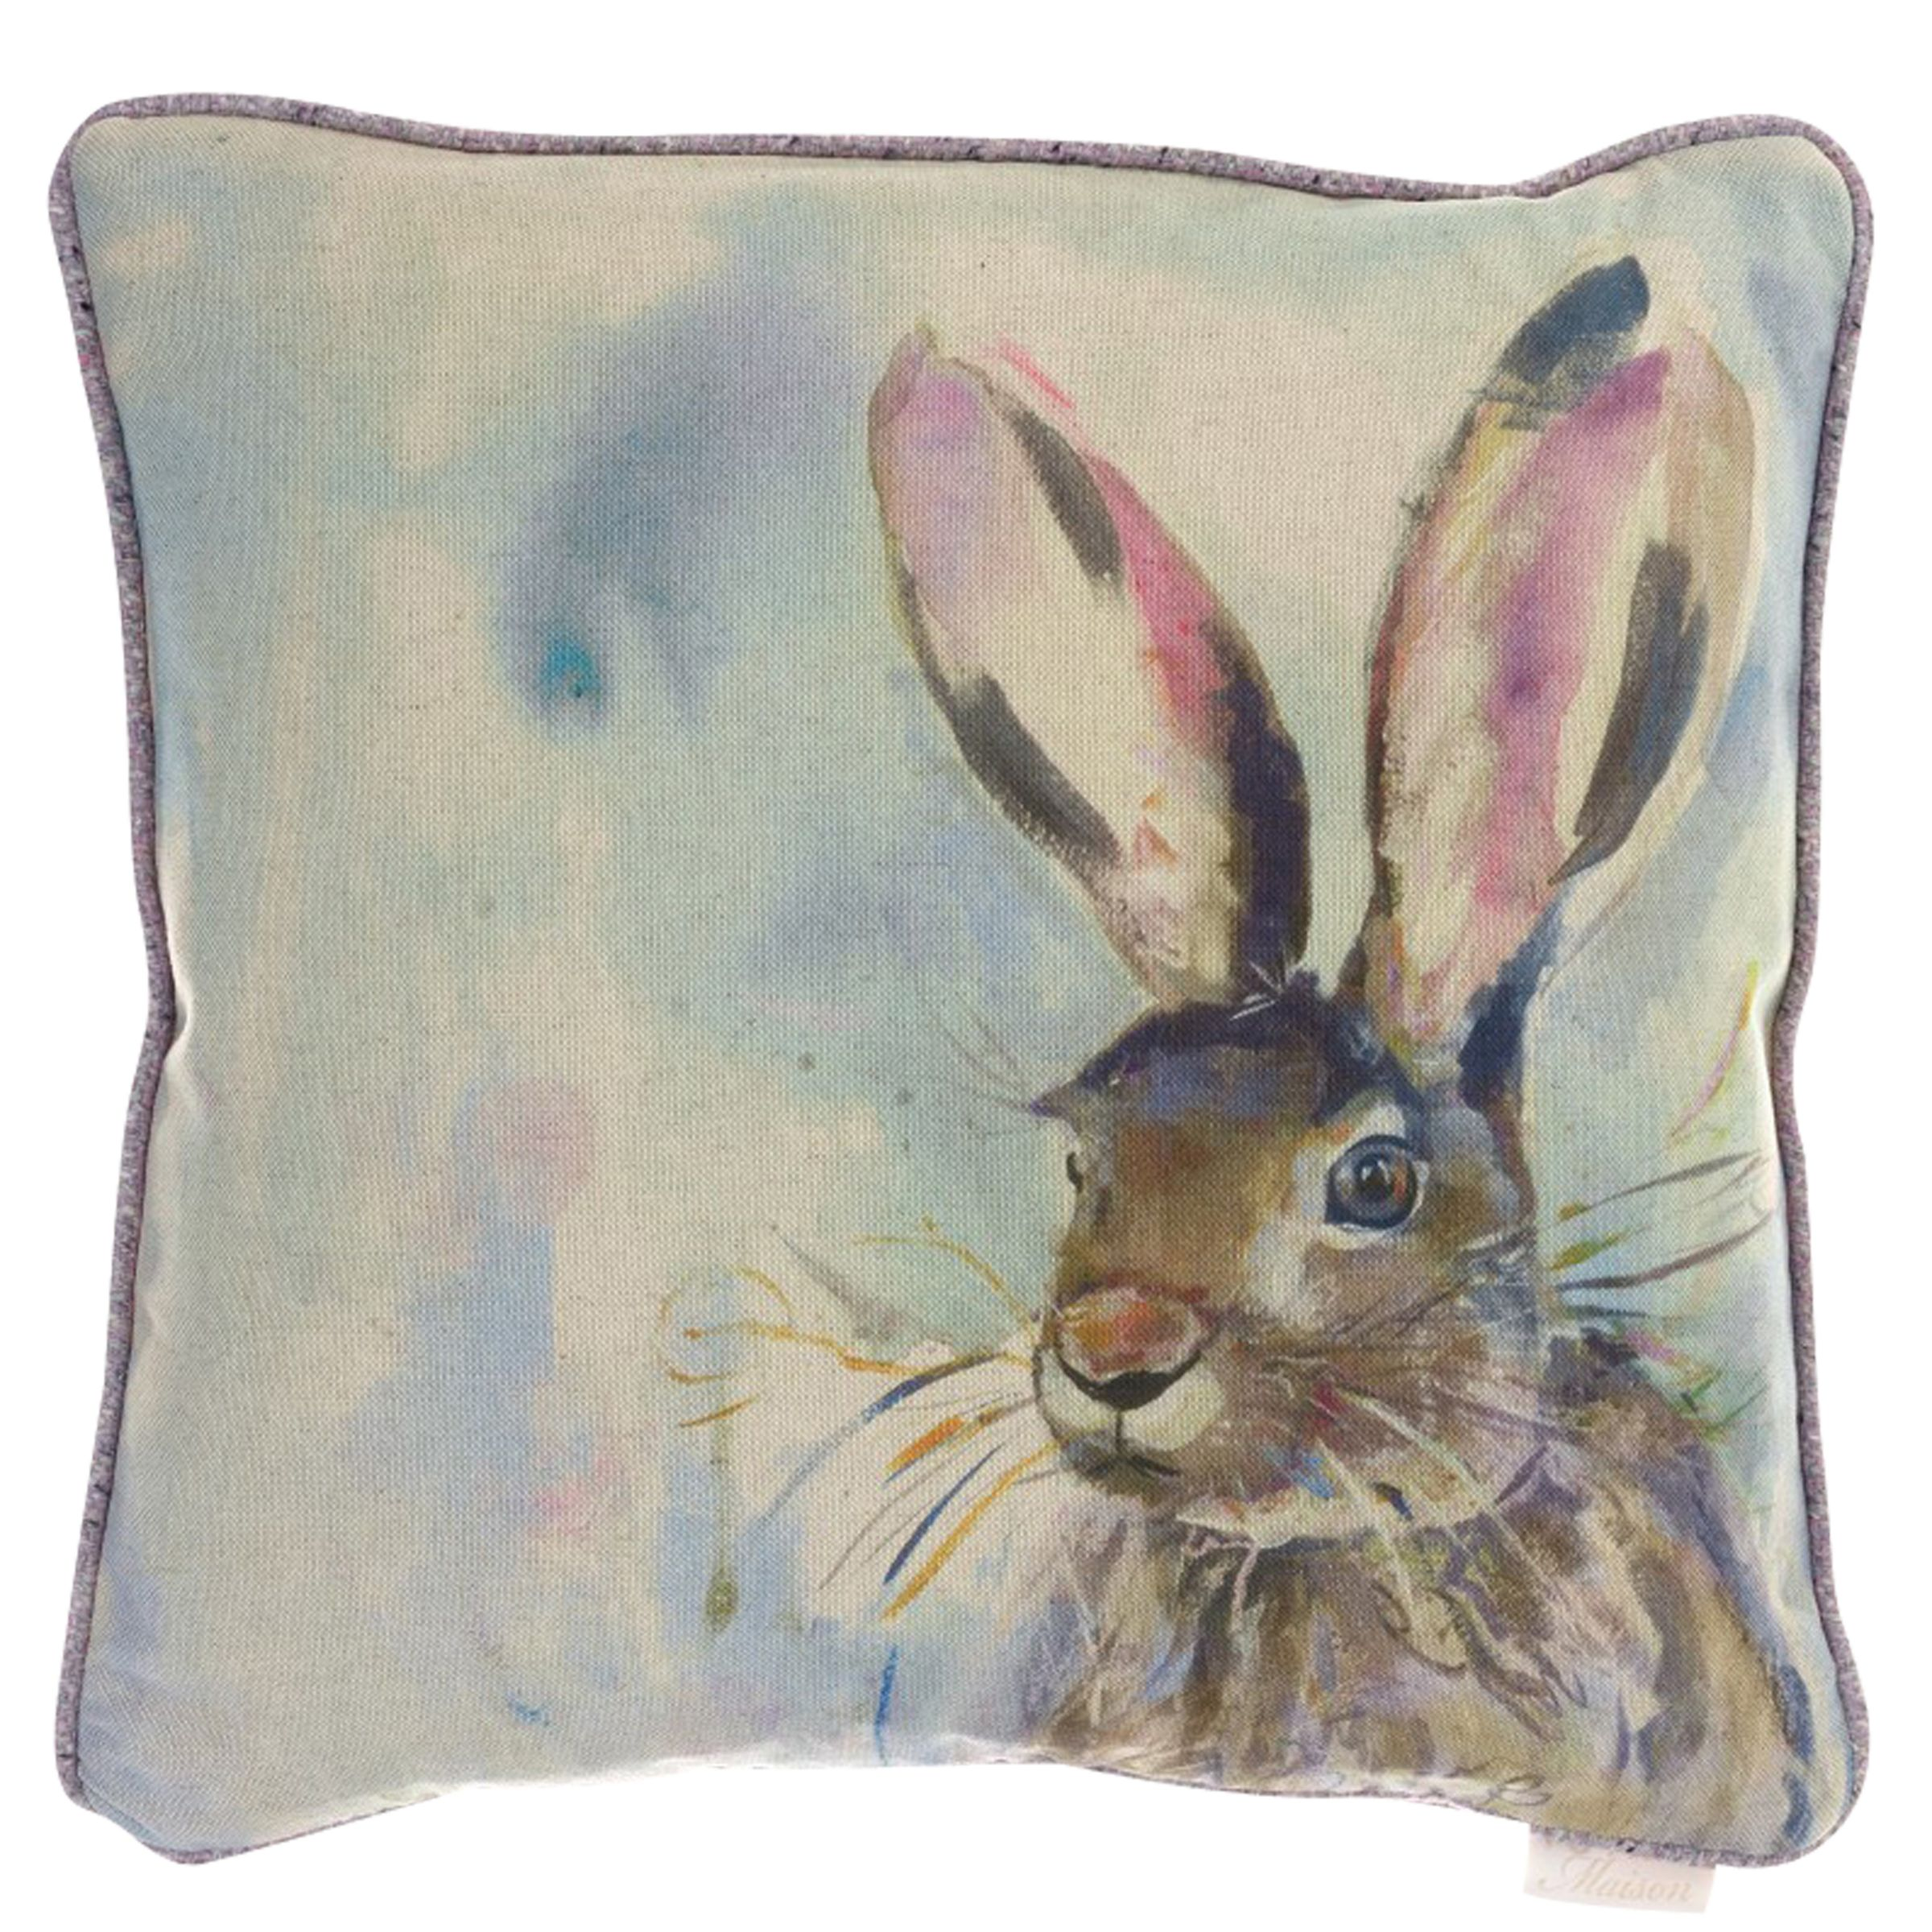 Voyage Voyage Harriet Hare Cushion